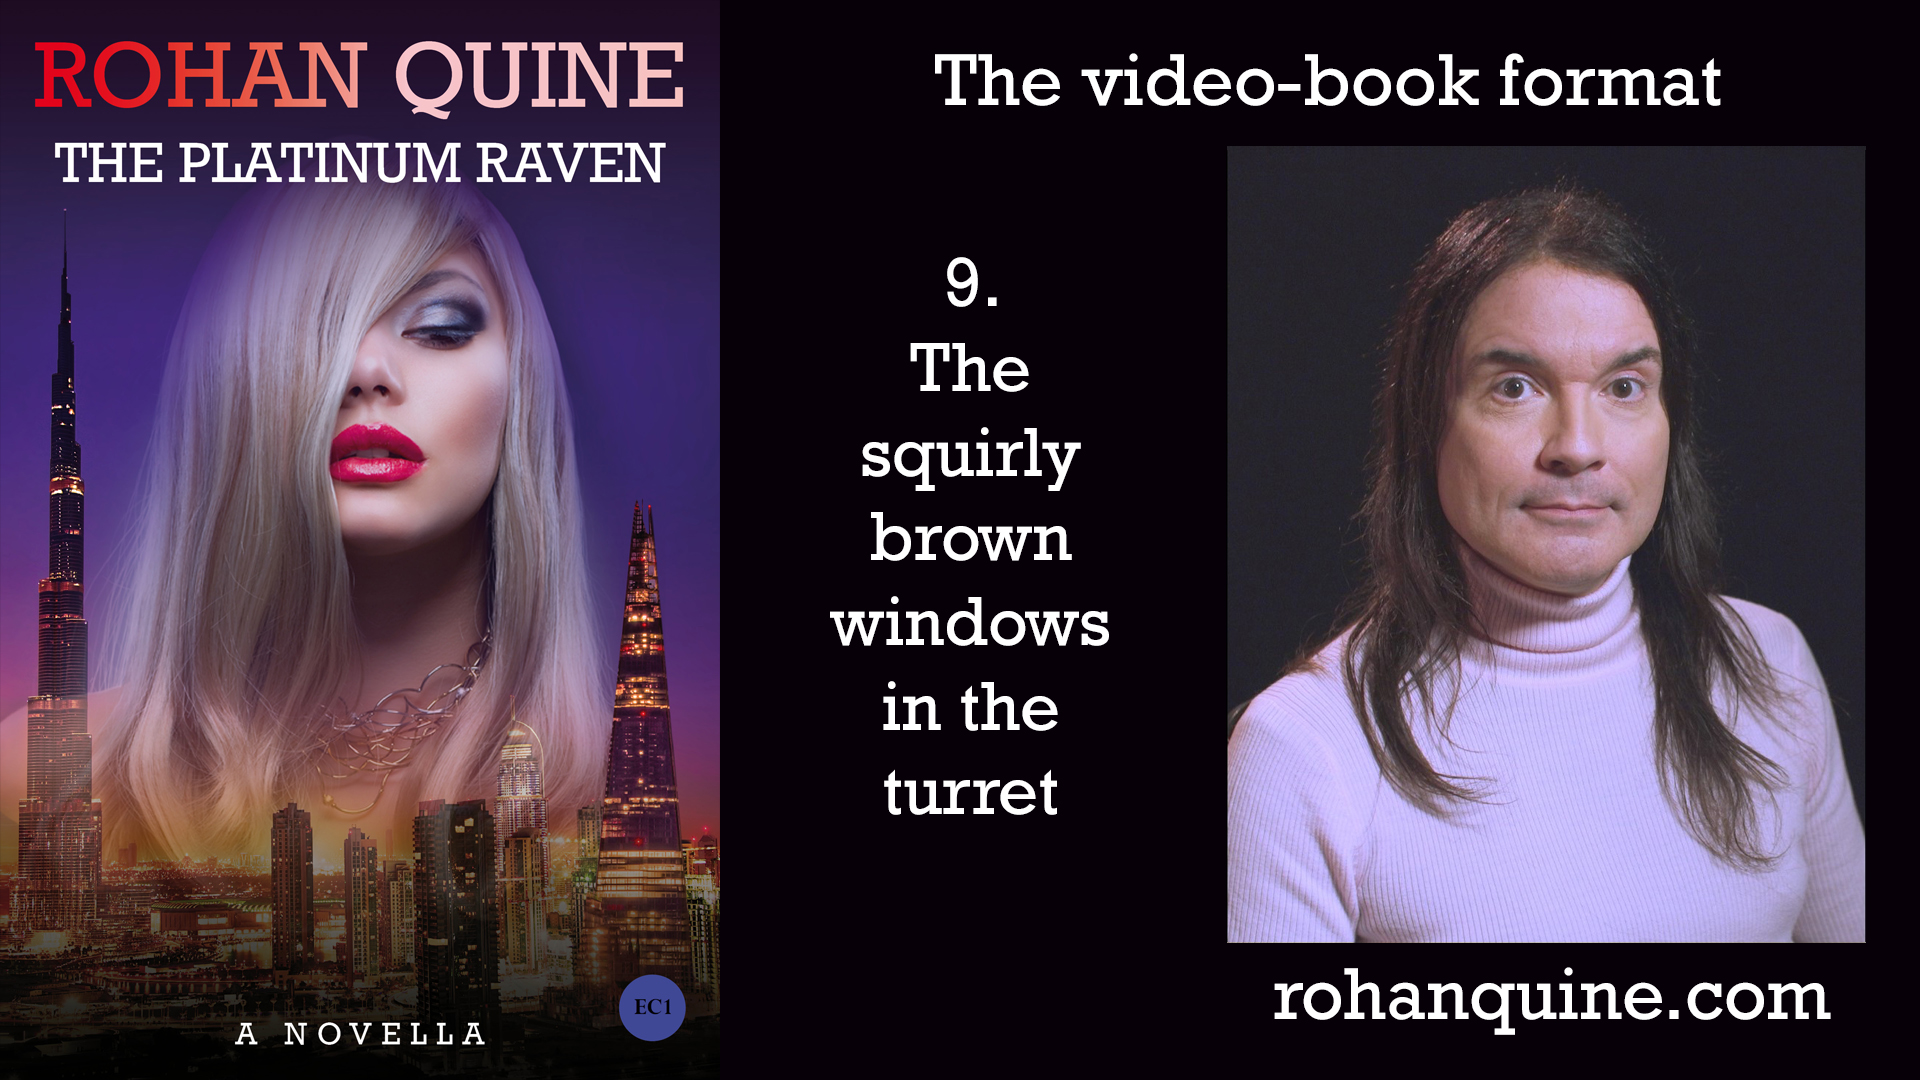 THE PLATINUM RAVEN by Rohan Quine - video-book format - chapter 9